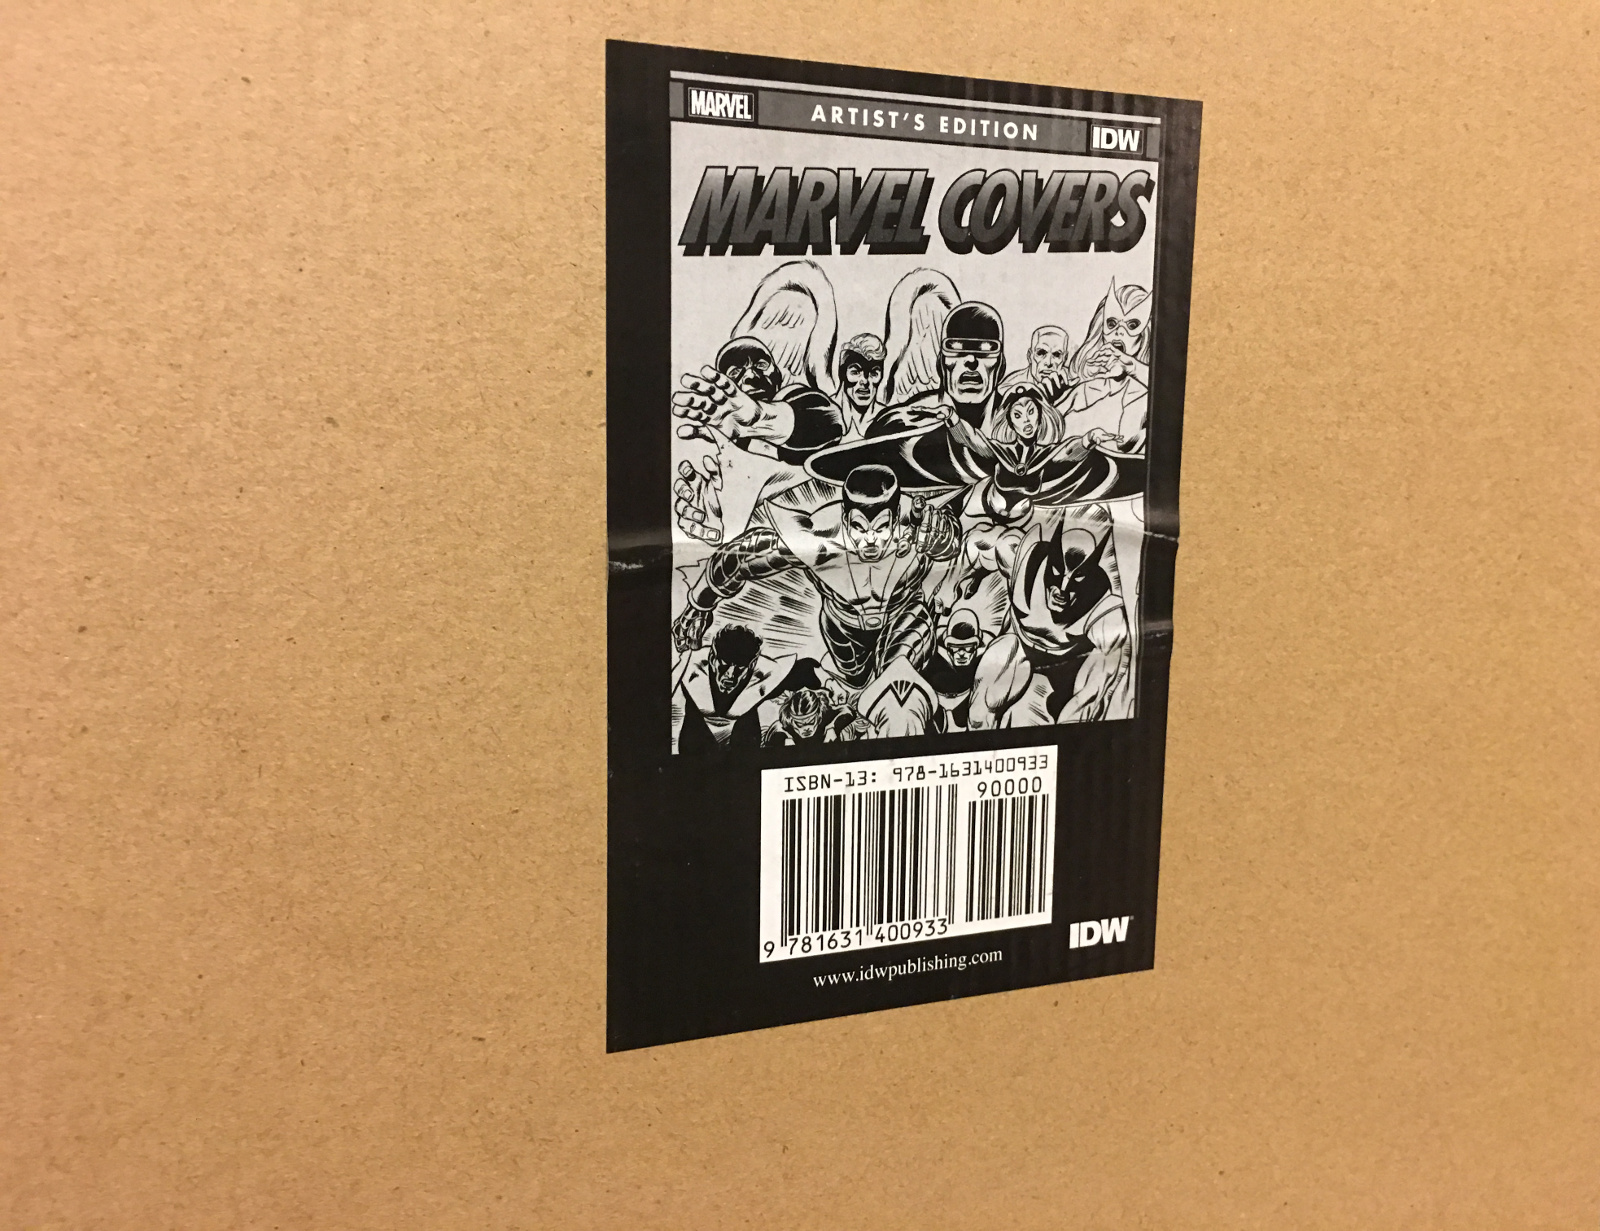 Review | Marvel Covers Artist's Edition